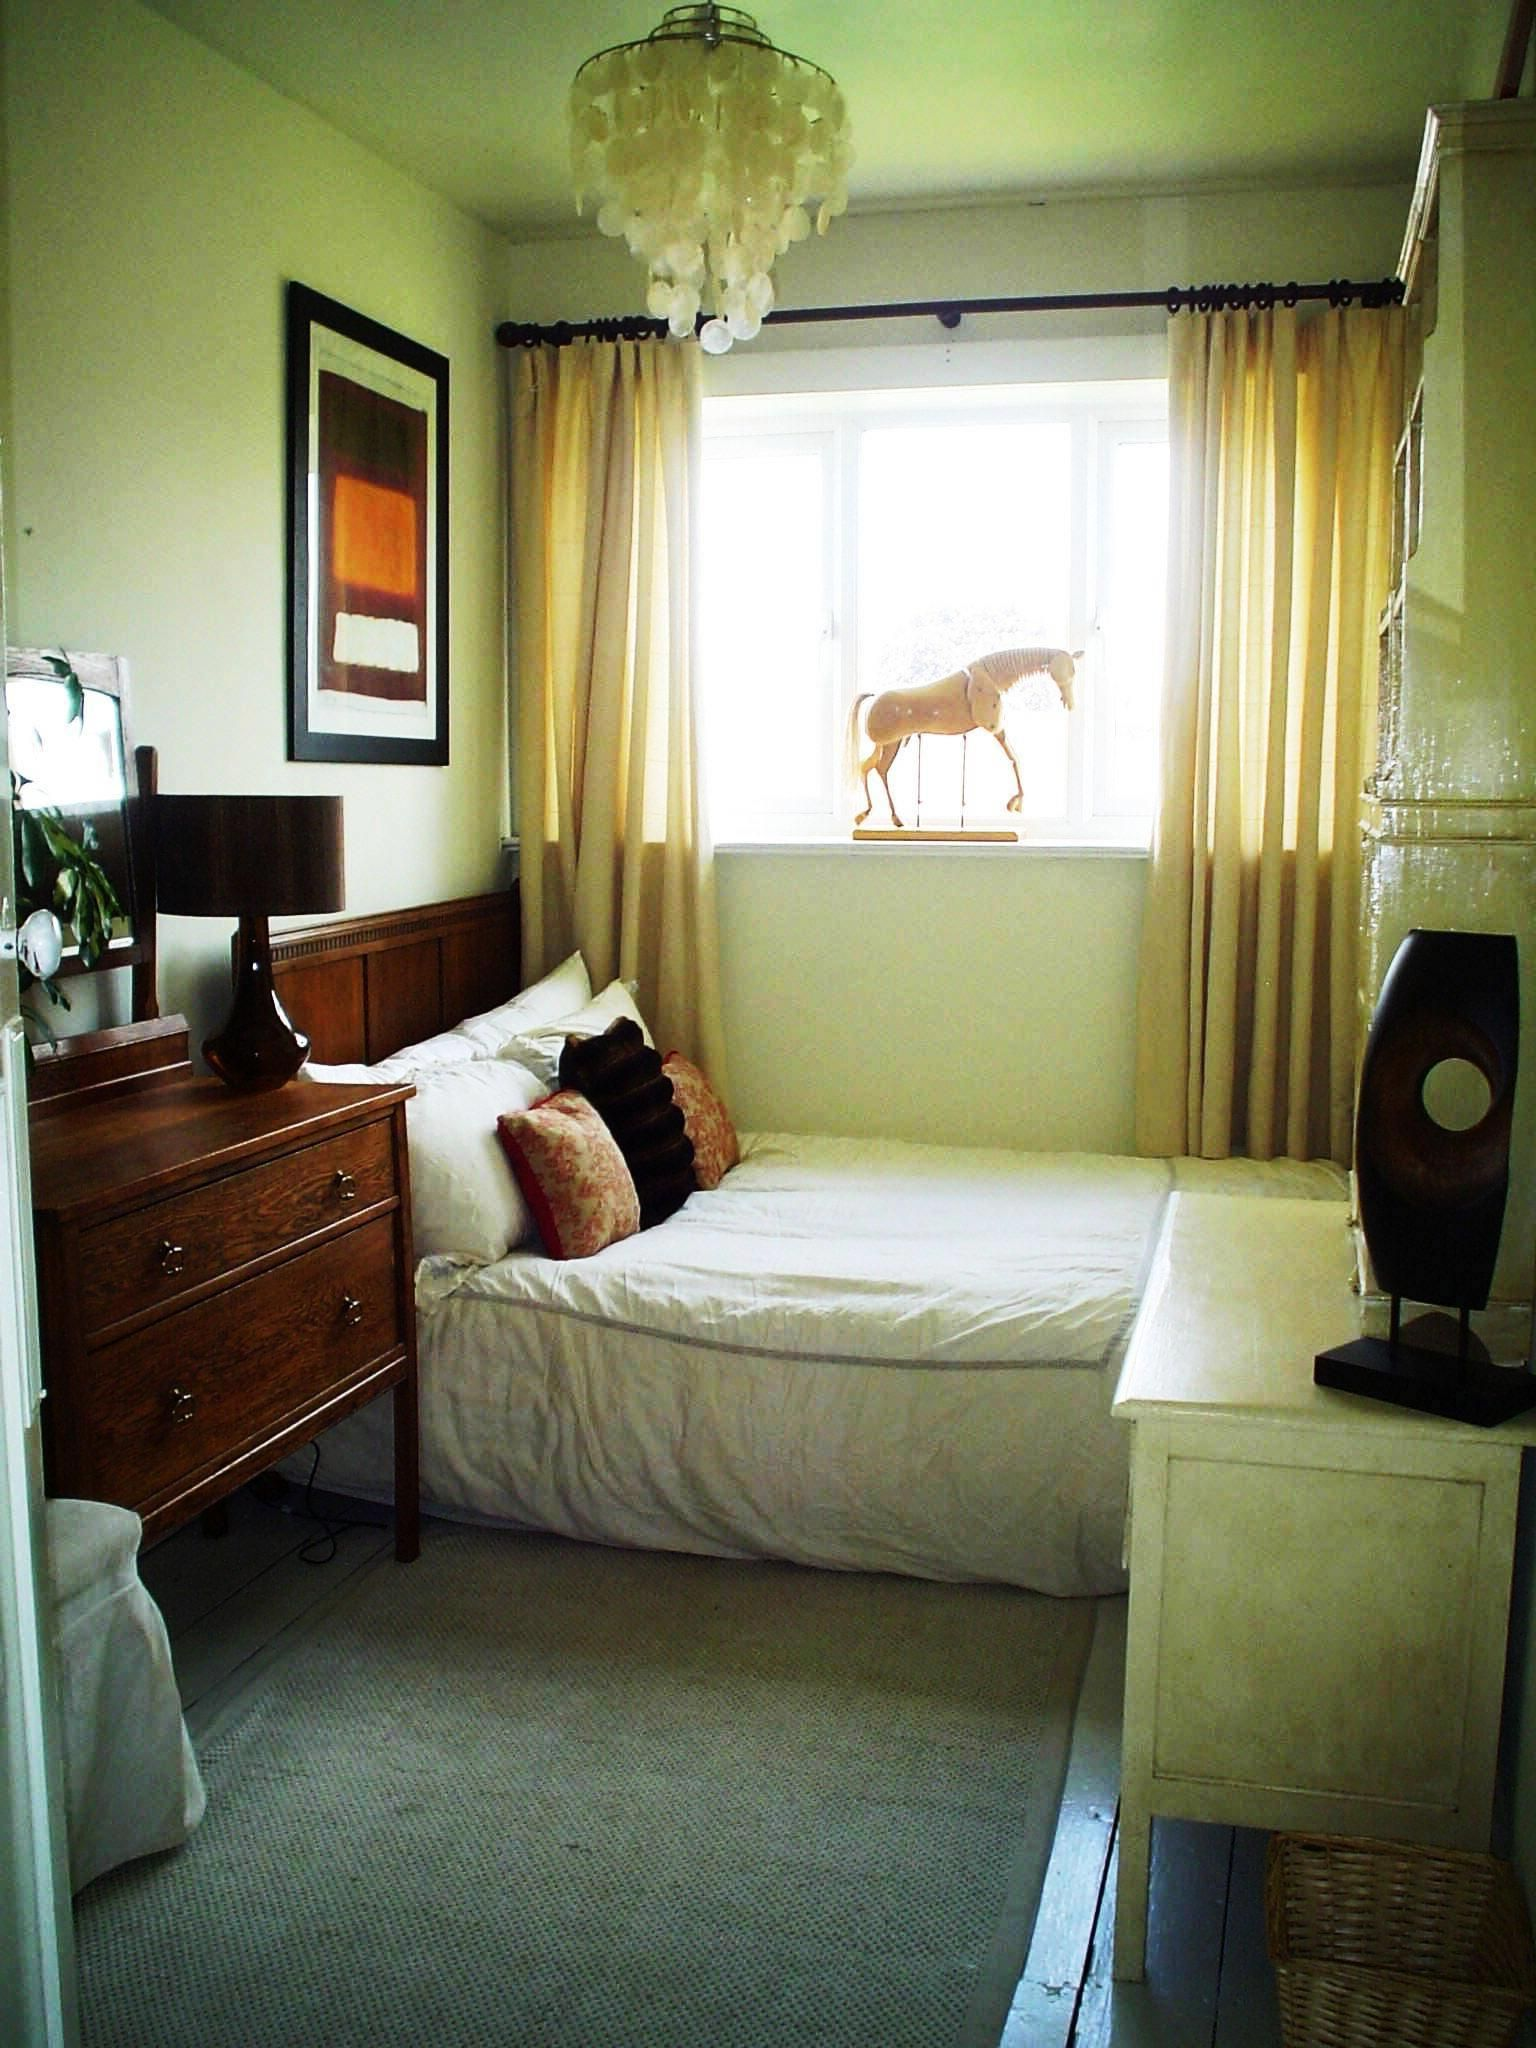 40 space saving ideas for small bedrooms very small on bedroom furniture design small rooms id=66272